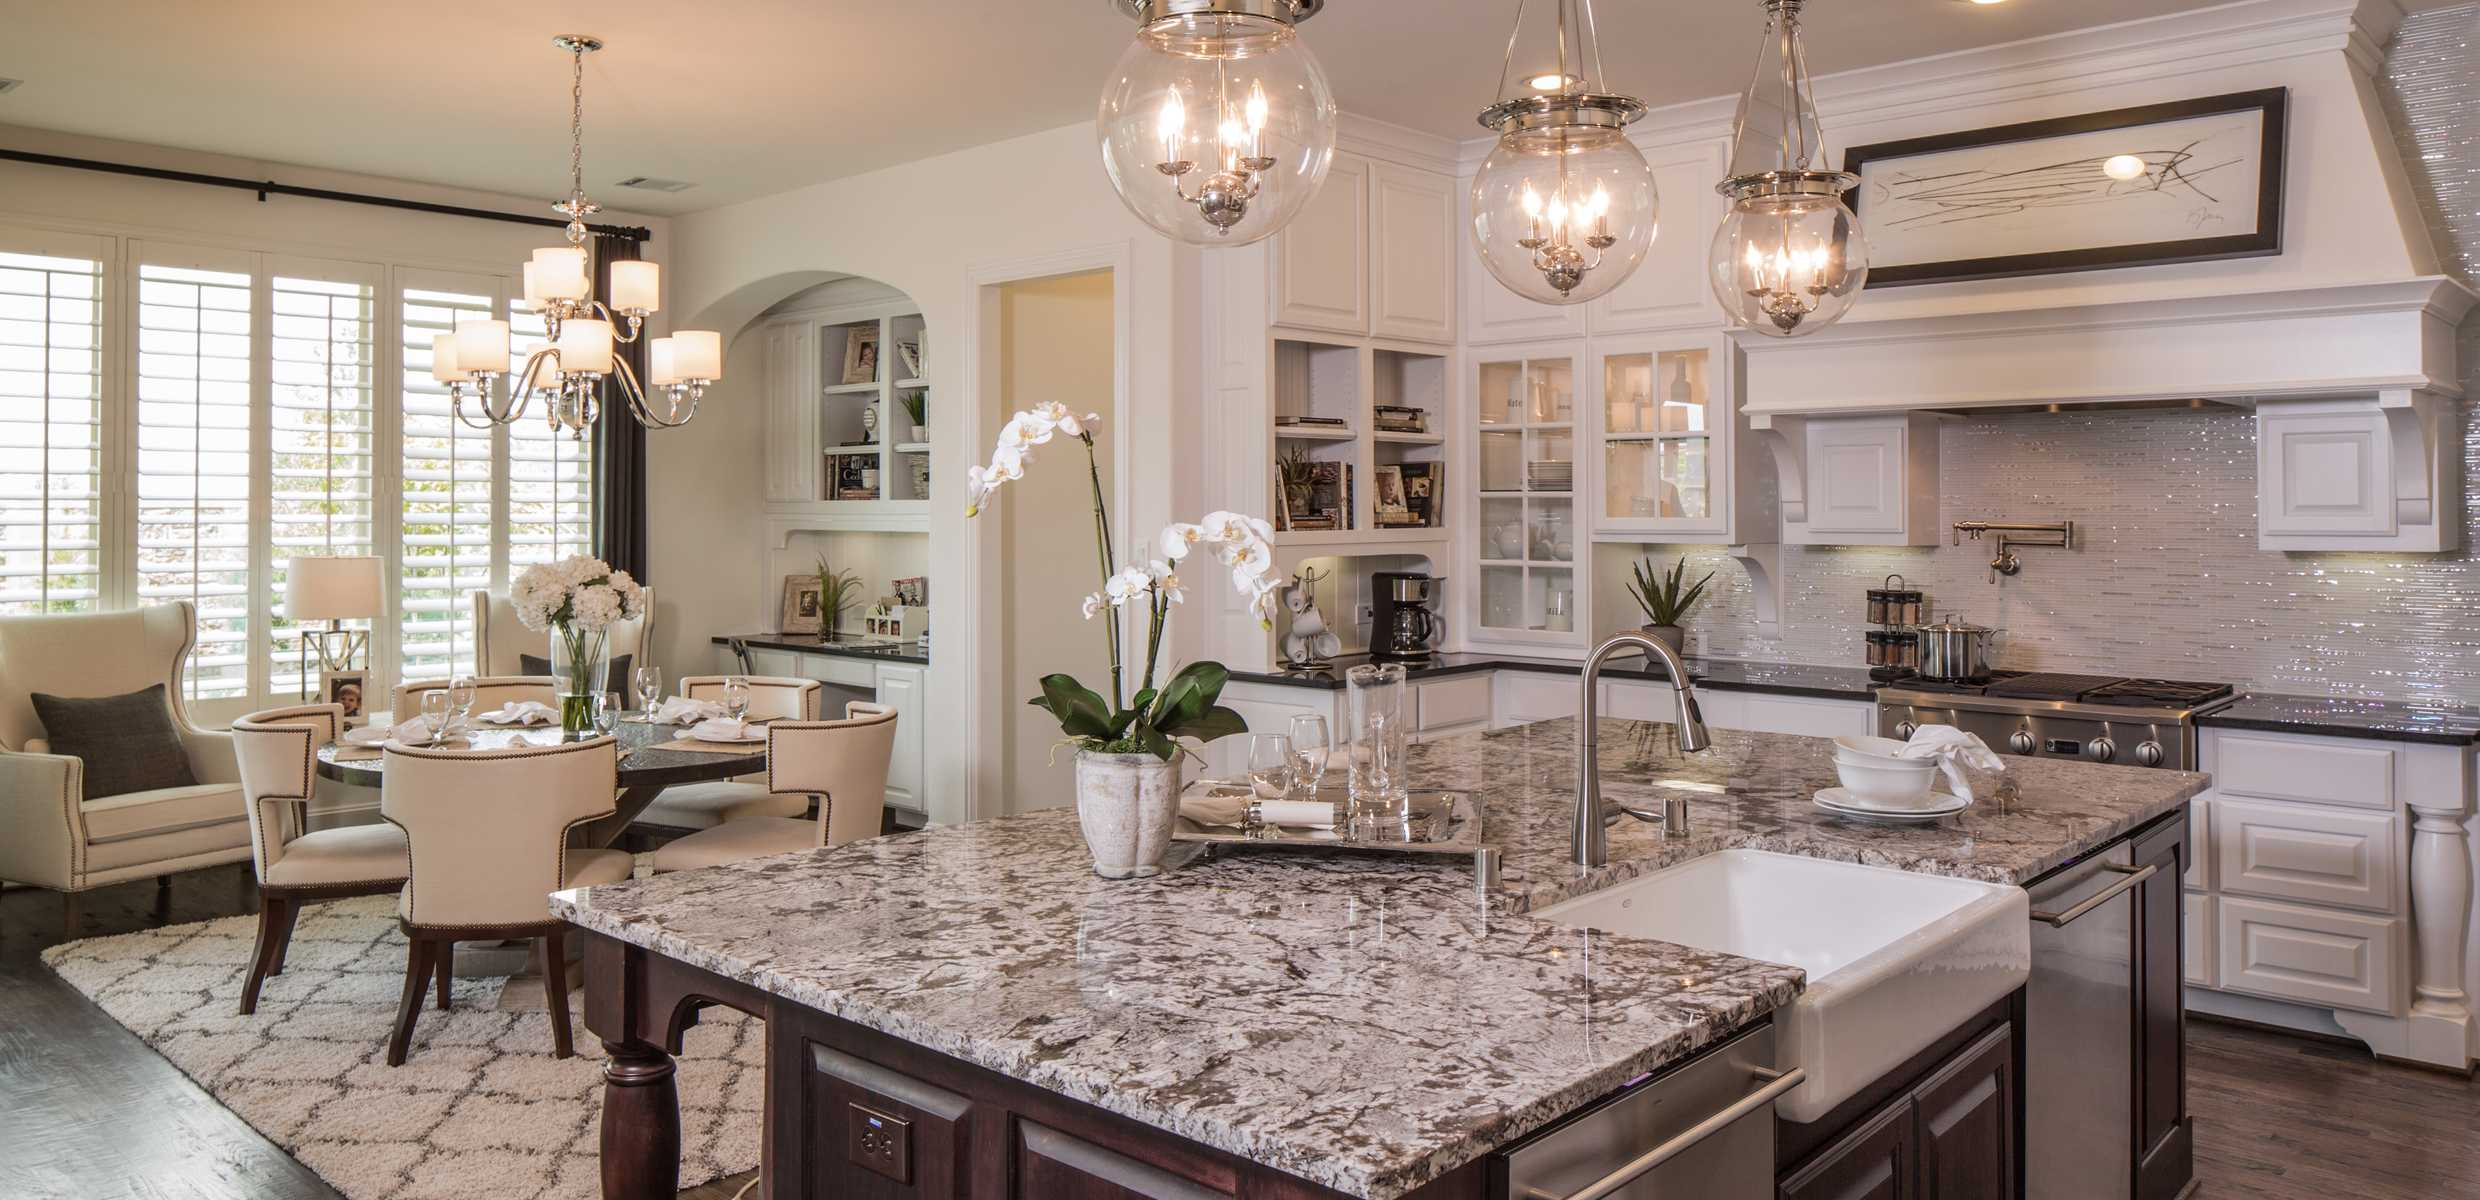 Kitchen With Island Floor Plans Texas Luxury Homes Amp Custom Homes Huntington Homes Since